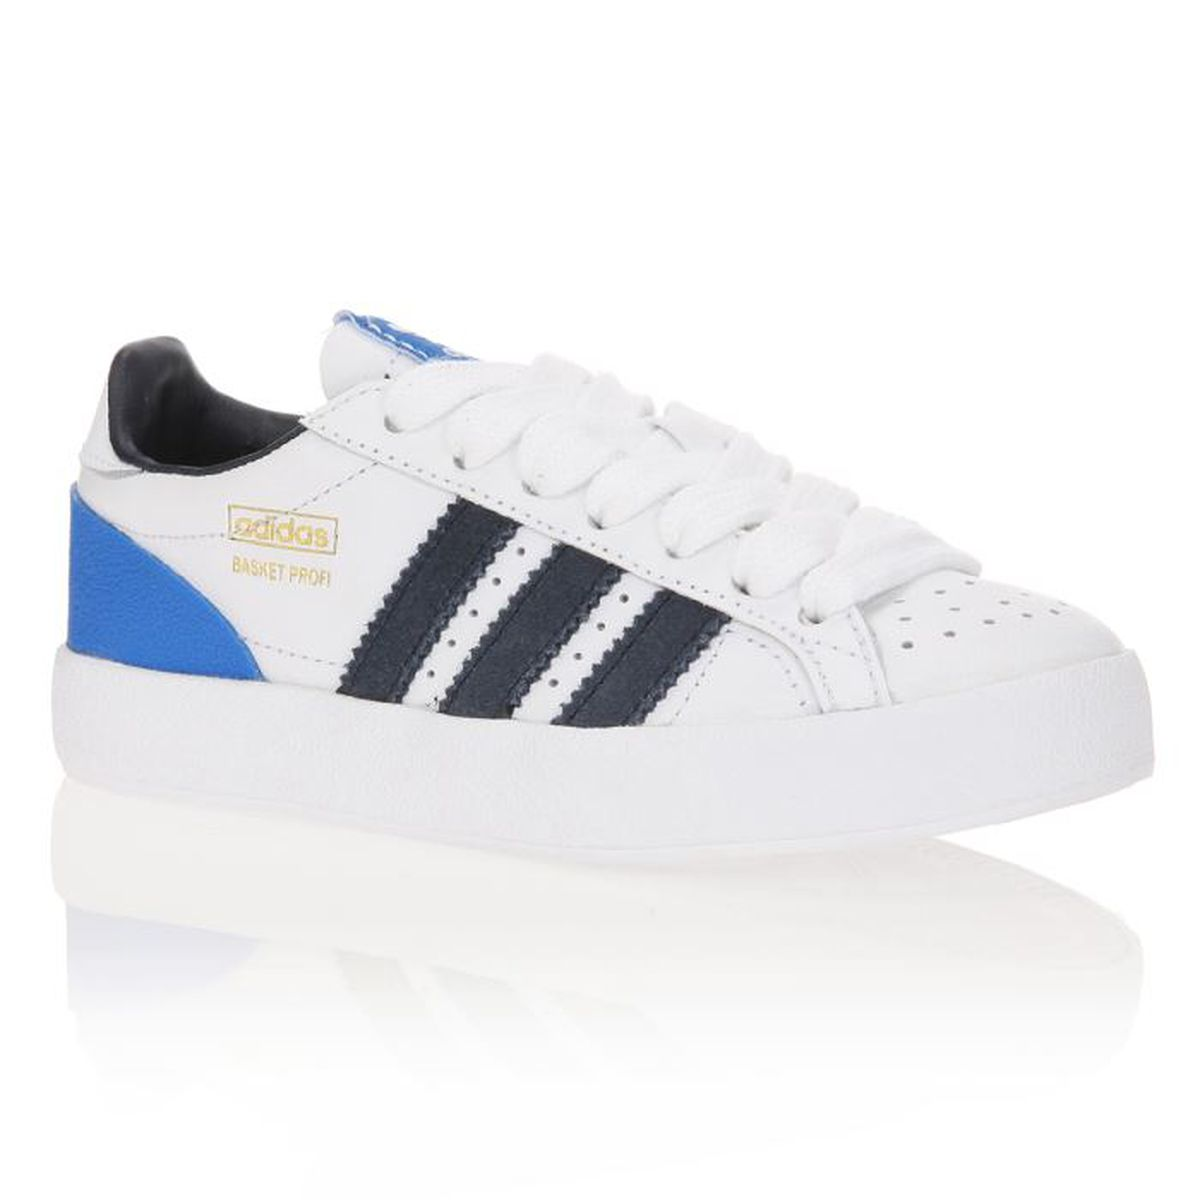 san francisco f3155 2e263 BASKET ADIDAS ORIGINALS Baskets PROFI LO K Enfant